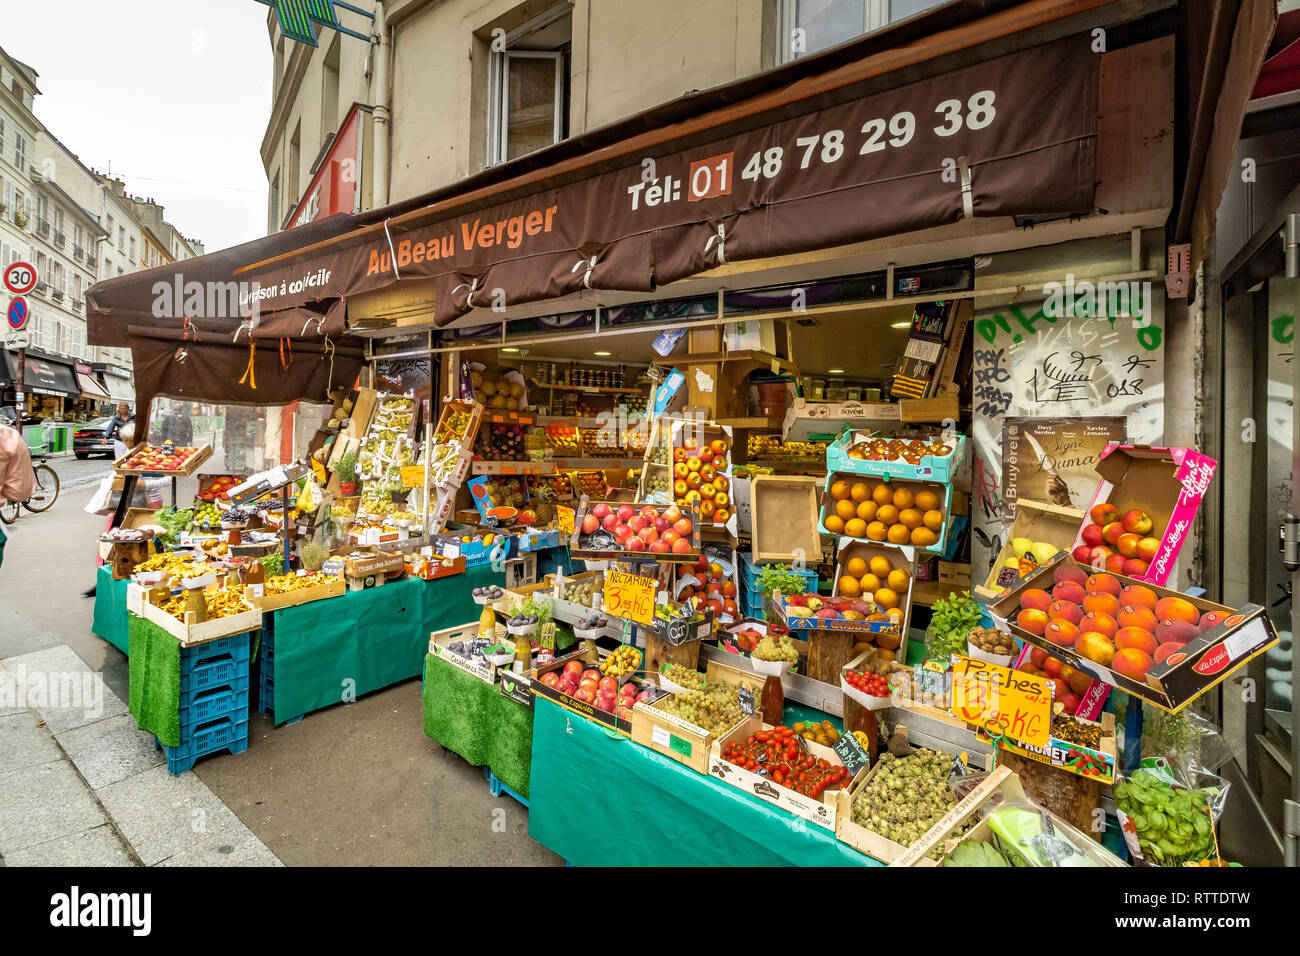 Au Beau Verger a fruit and vegetable shop on Rue des Martyrs in the 9th arrondissement of Paris - Stock Image